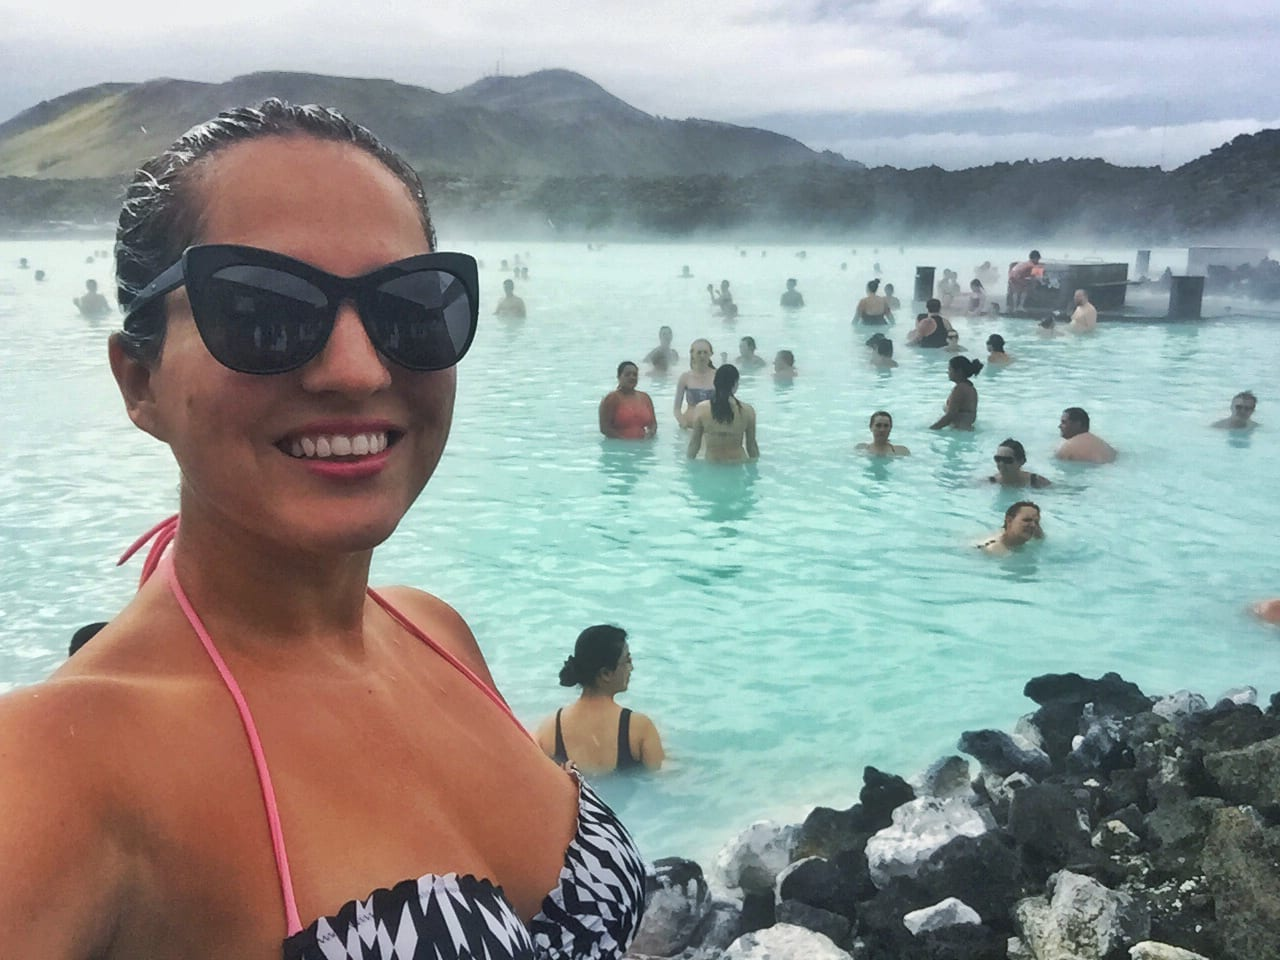 Kate takes a selfie in the Blue Lagoon in Iceland, steaming bright blue water behind her with people in the water.